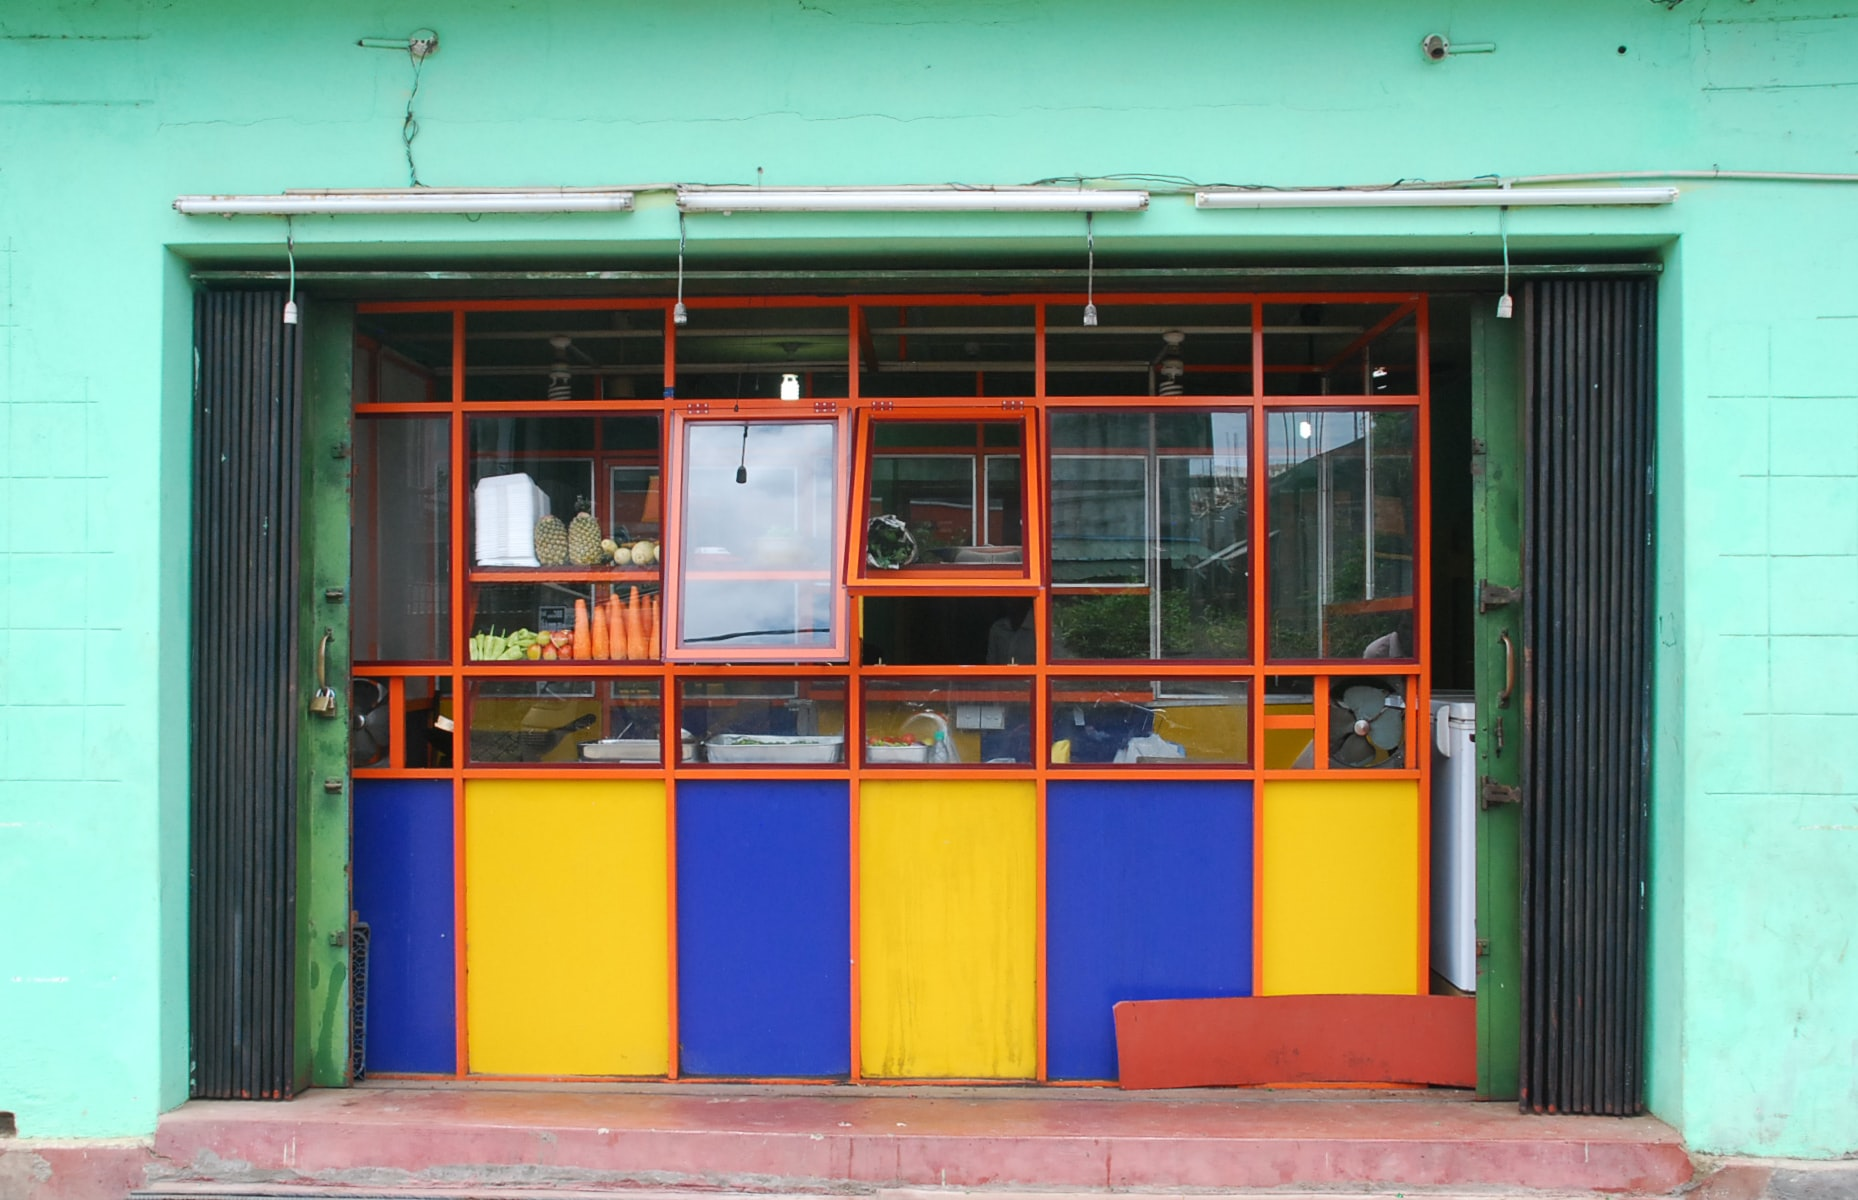 A store window with yellow and blue tiles below